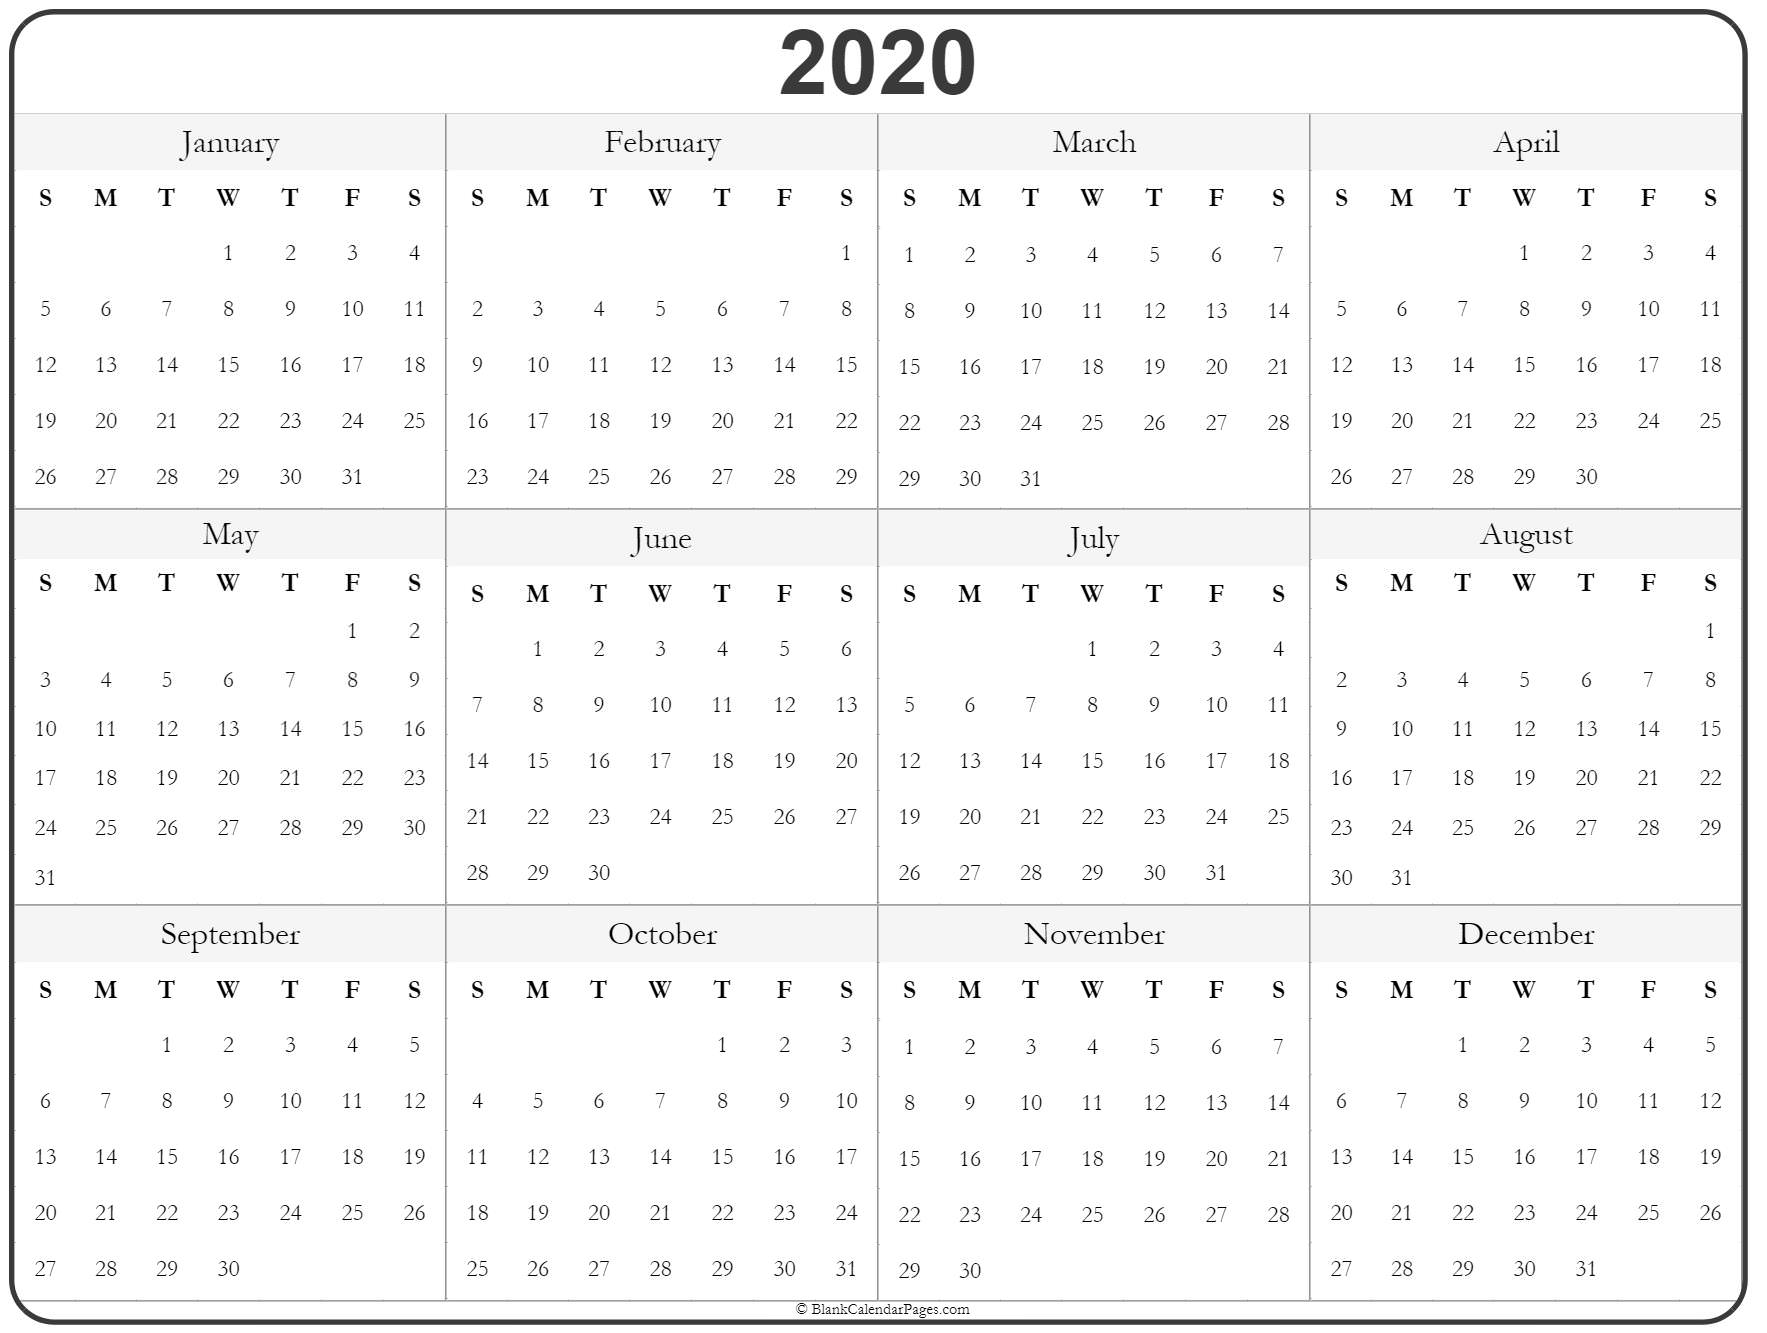 Printable Calendar 2020 Year 2020 year calendar | yearly printable